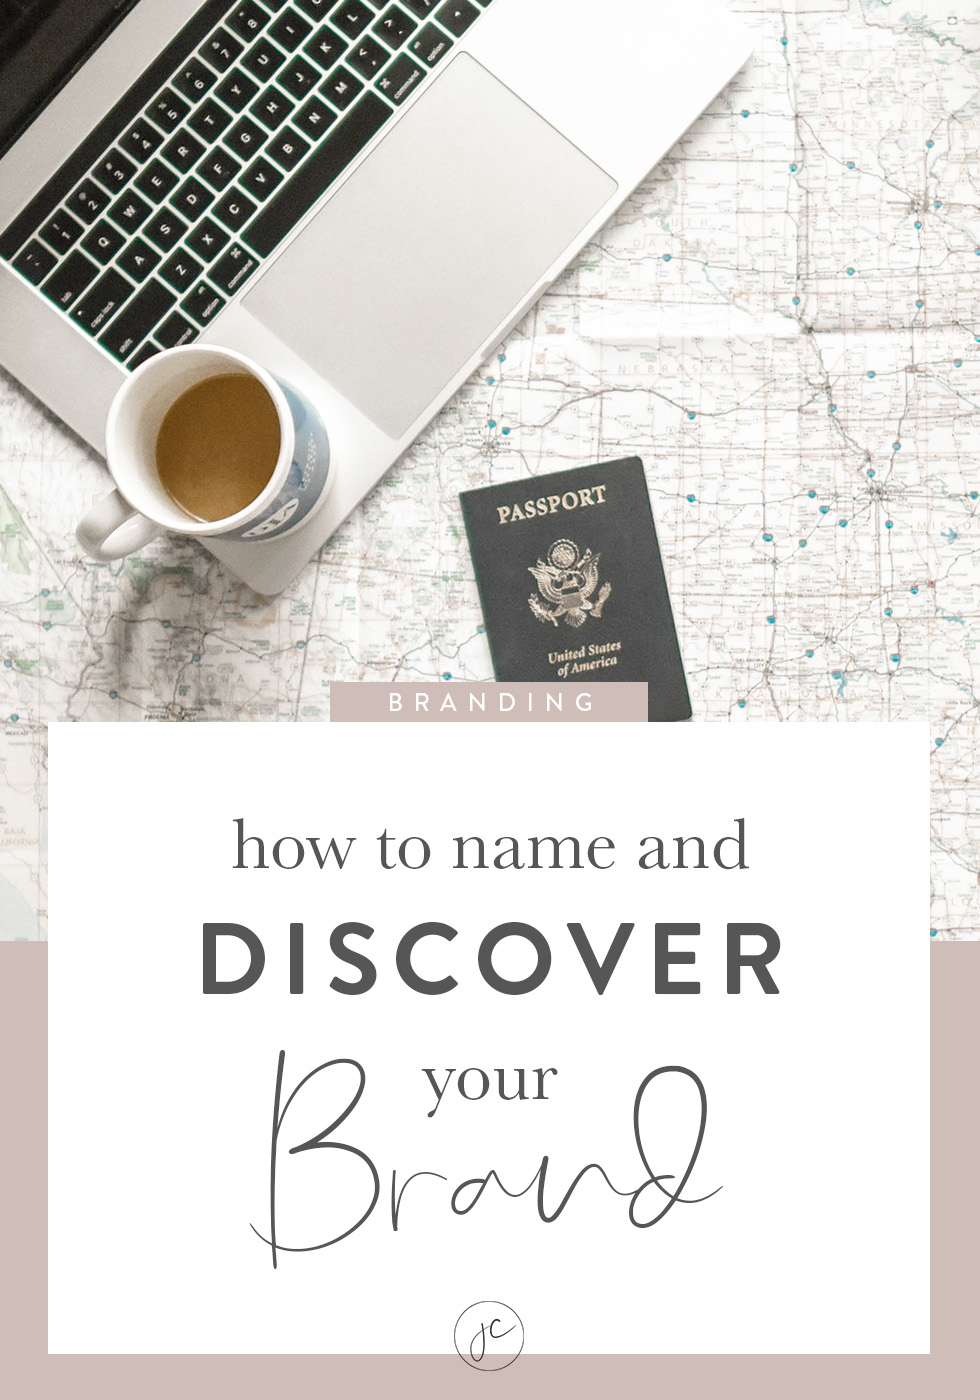 Here's How to Name and Discover Your Brand